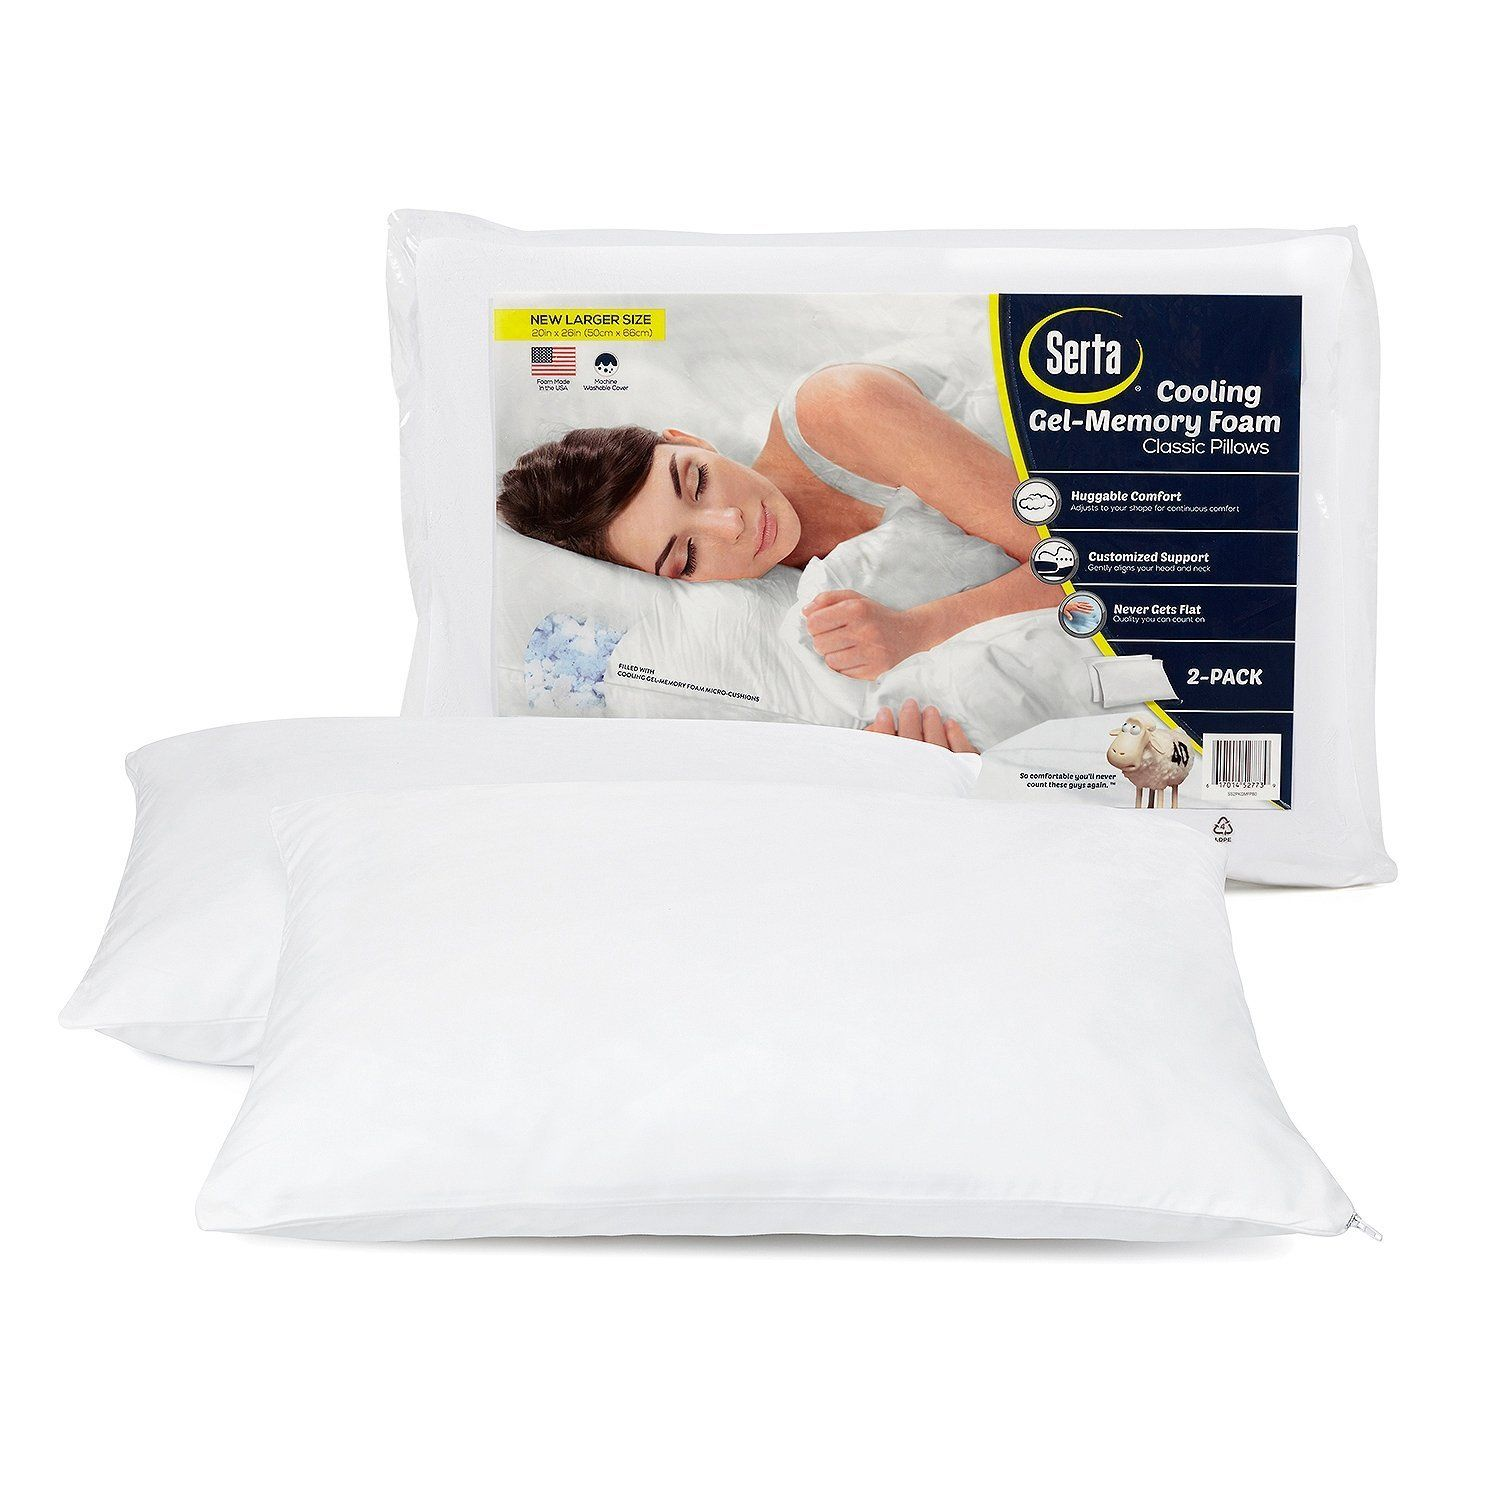 Serta Gel Memory Foam Cluster Pillows Set Of 2 Just 12 93 Amazing Price Grab The Serta Gel Memory Foam Cluster Classic Pillows Pillows